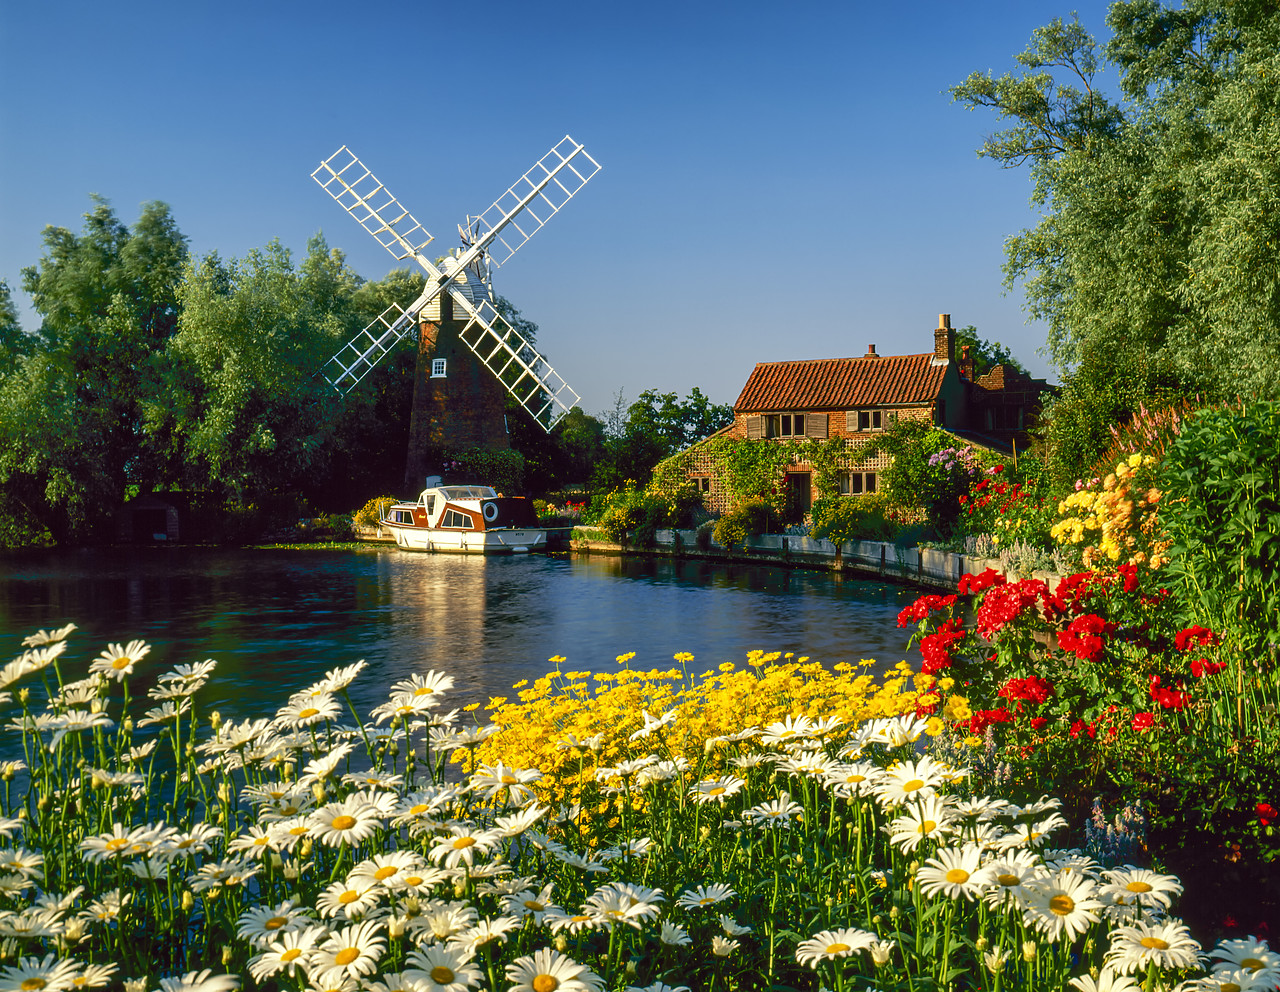 #955597-2 - Hunset Mill on the River Ant, Norfolk, England